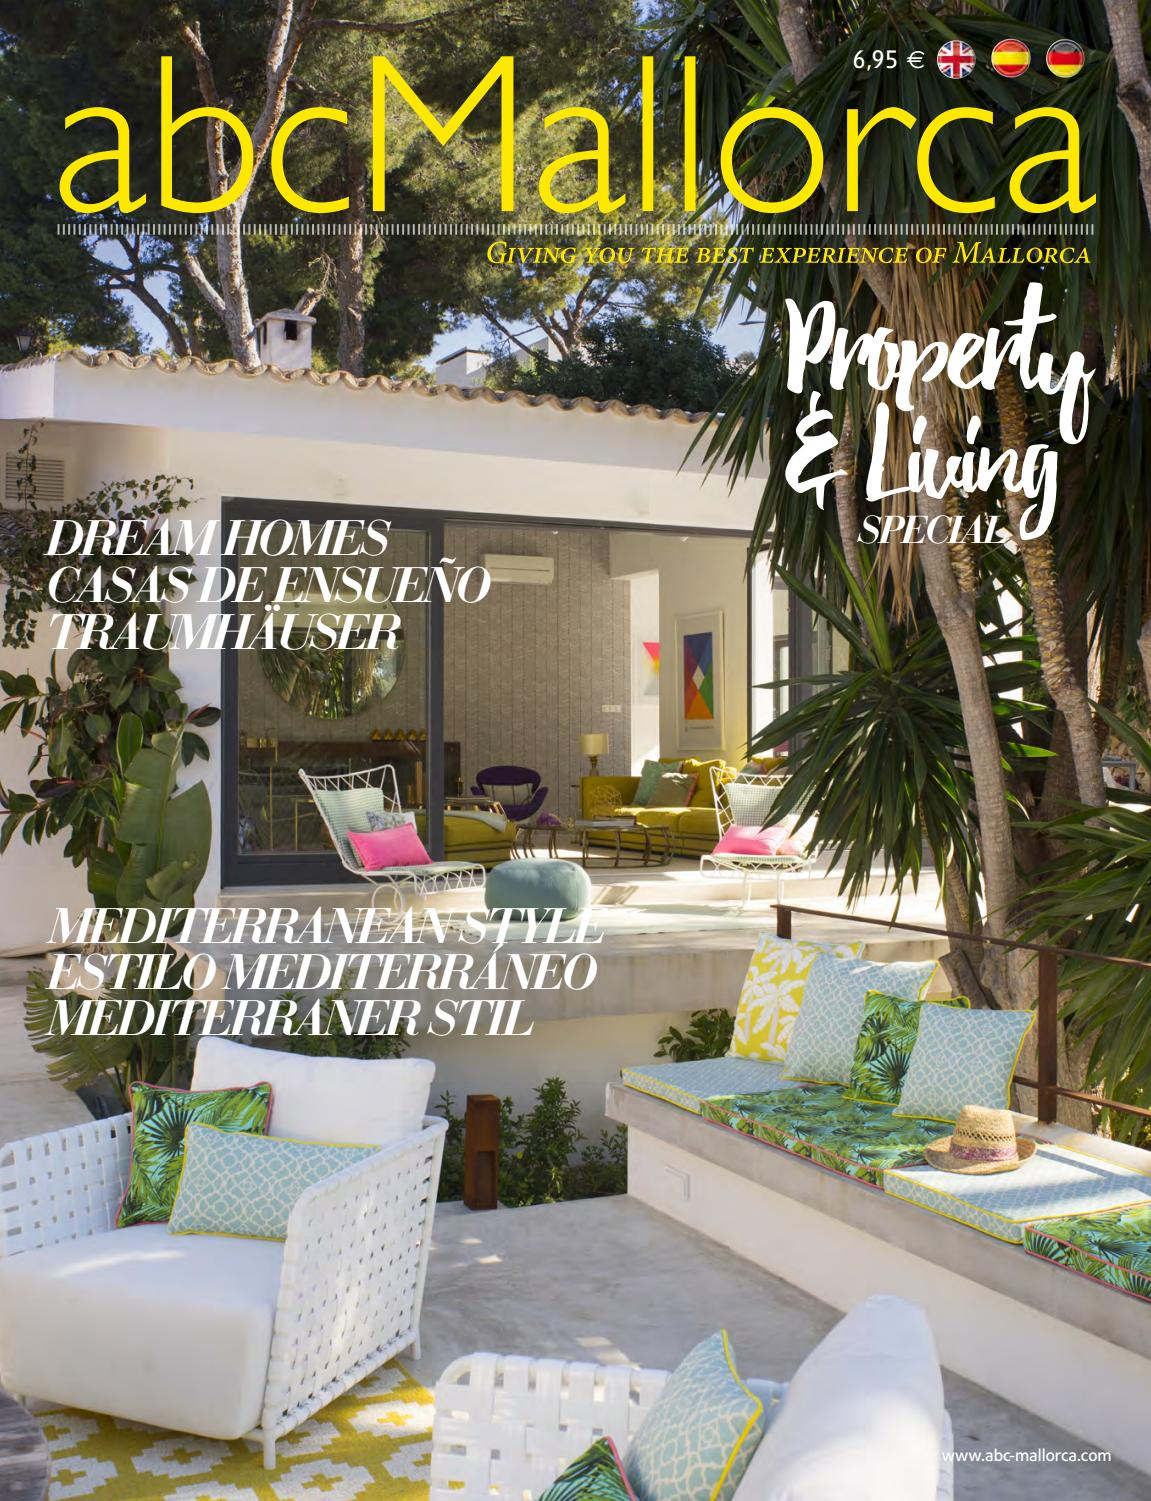 107th abcMallorca Property & Living Special by abcMallorca - issuu